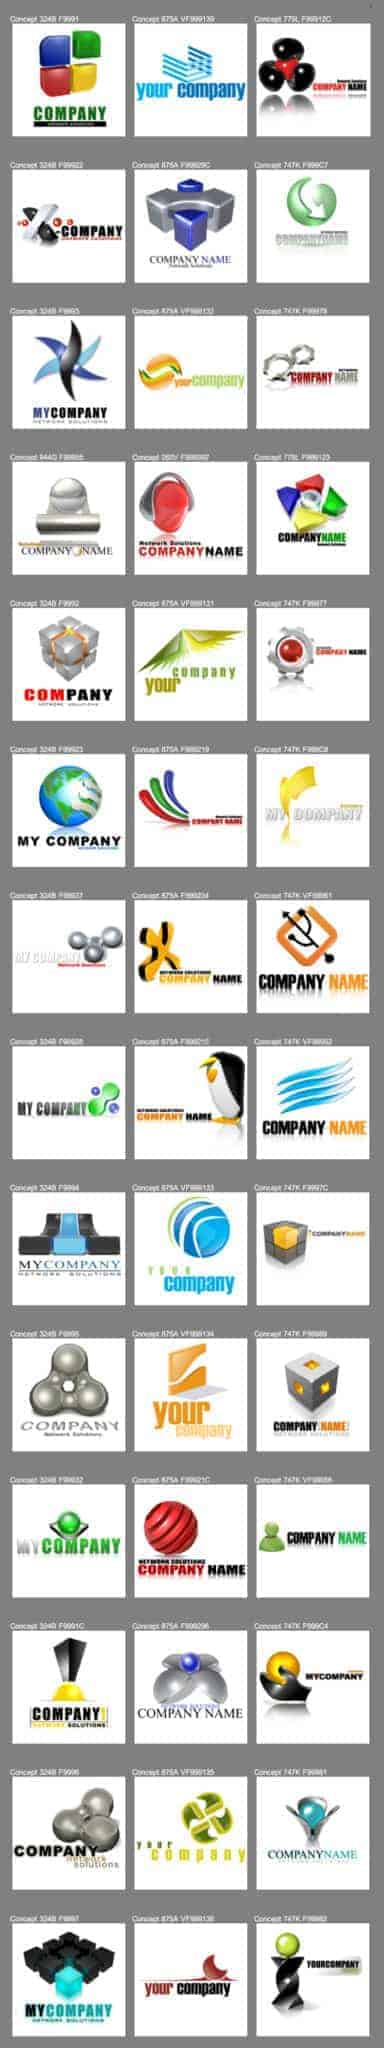 Elements of a Great brand logo